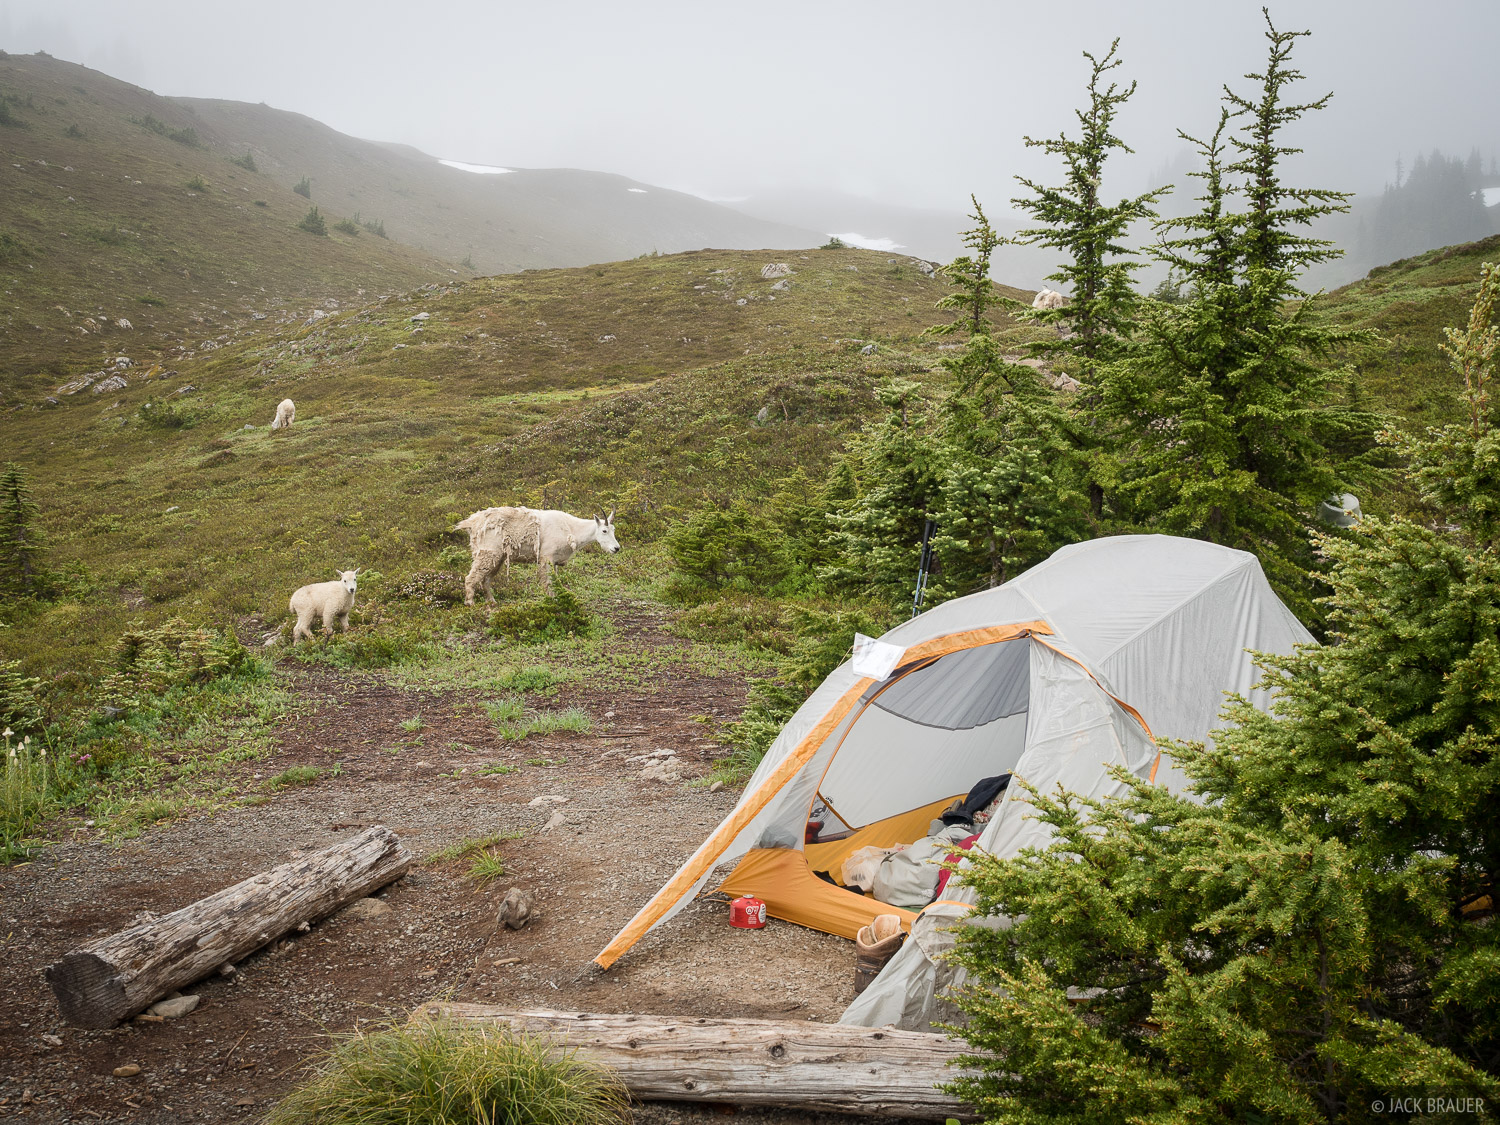 Olympic Peninsula, Sol Duc, Washington, mountain goat, tent, photo